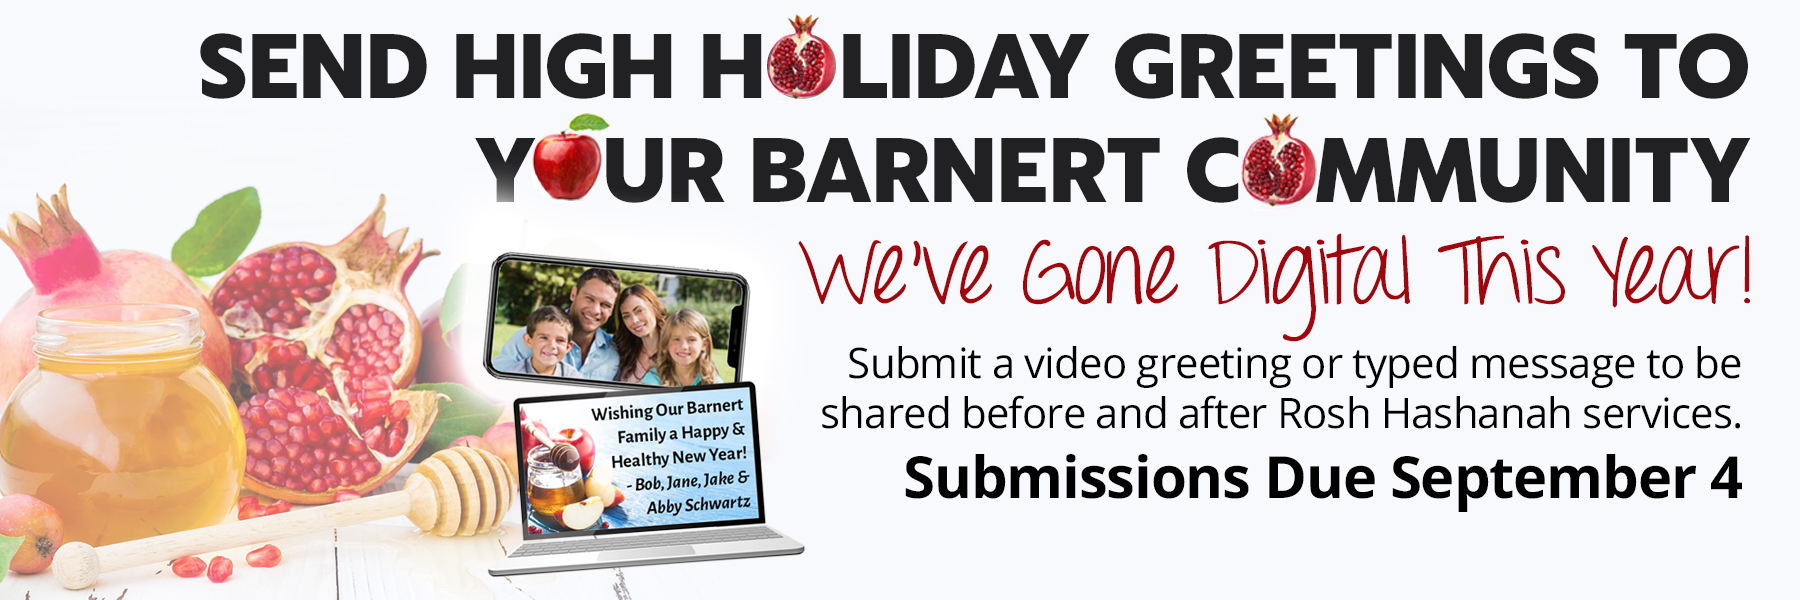 "<a href=""https://www.barnerttemple.org/form/HighHolidayGreetings""